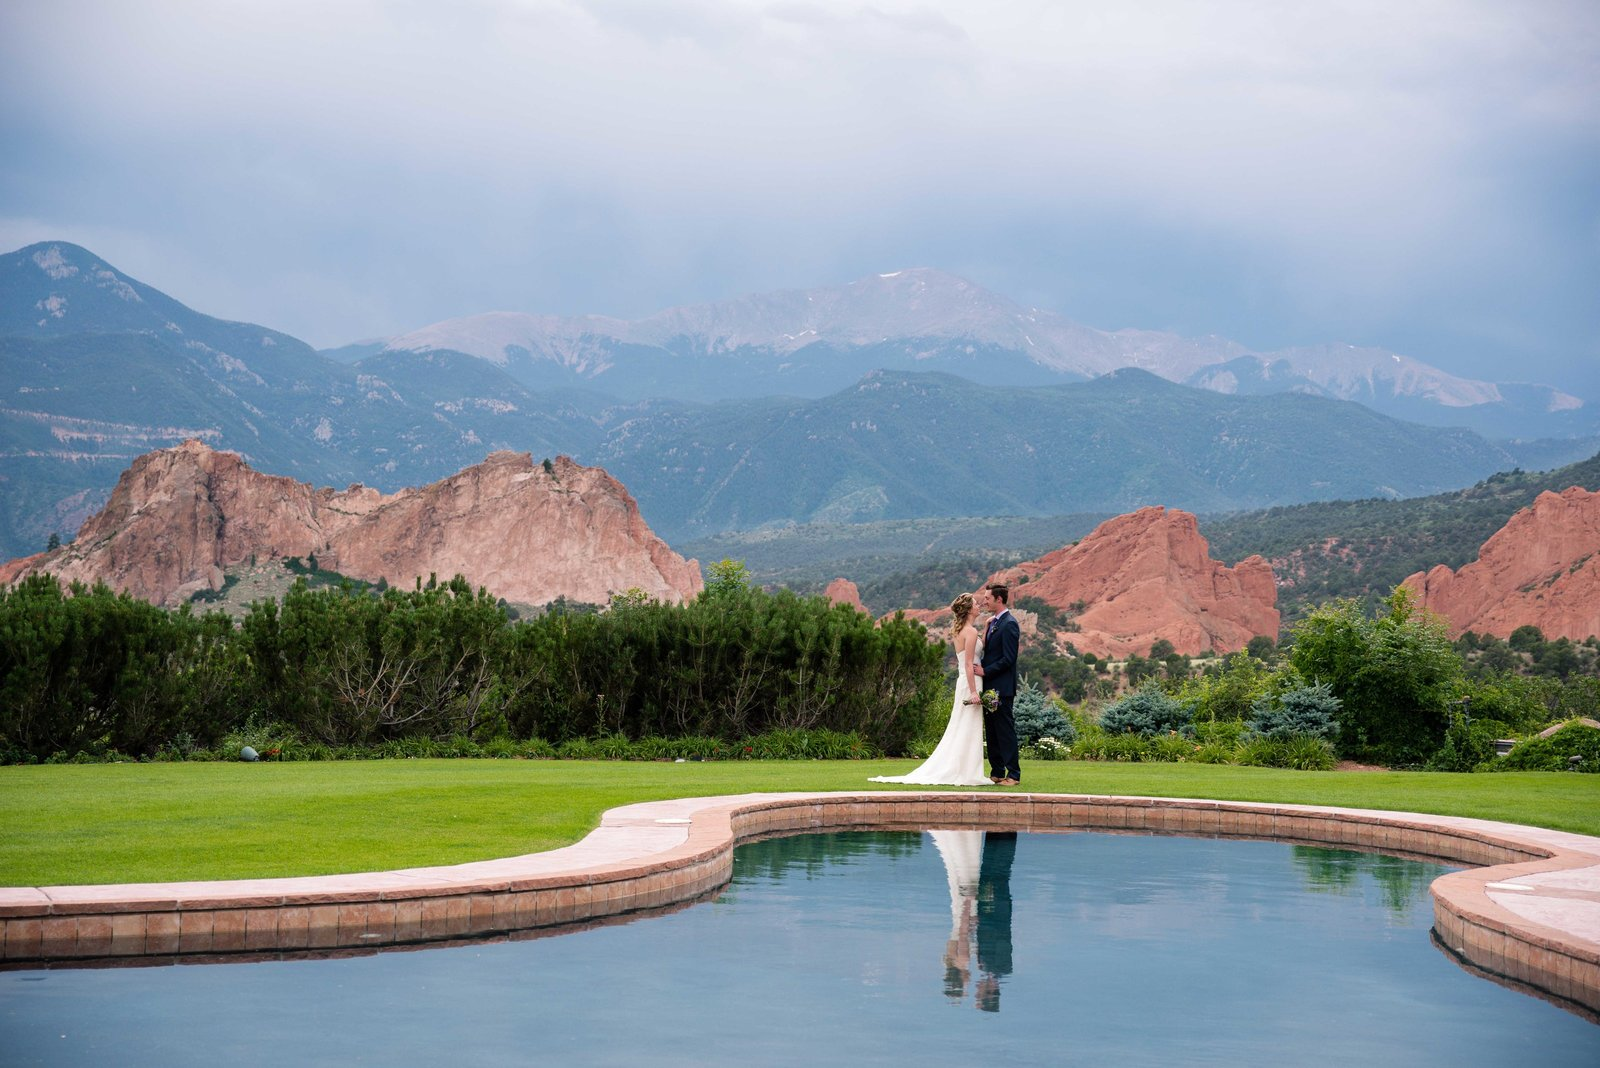 amazing wedding couple in the mountains reflected in water